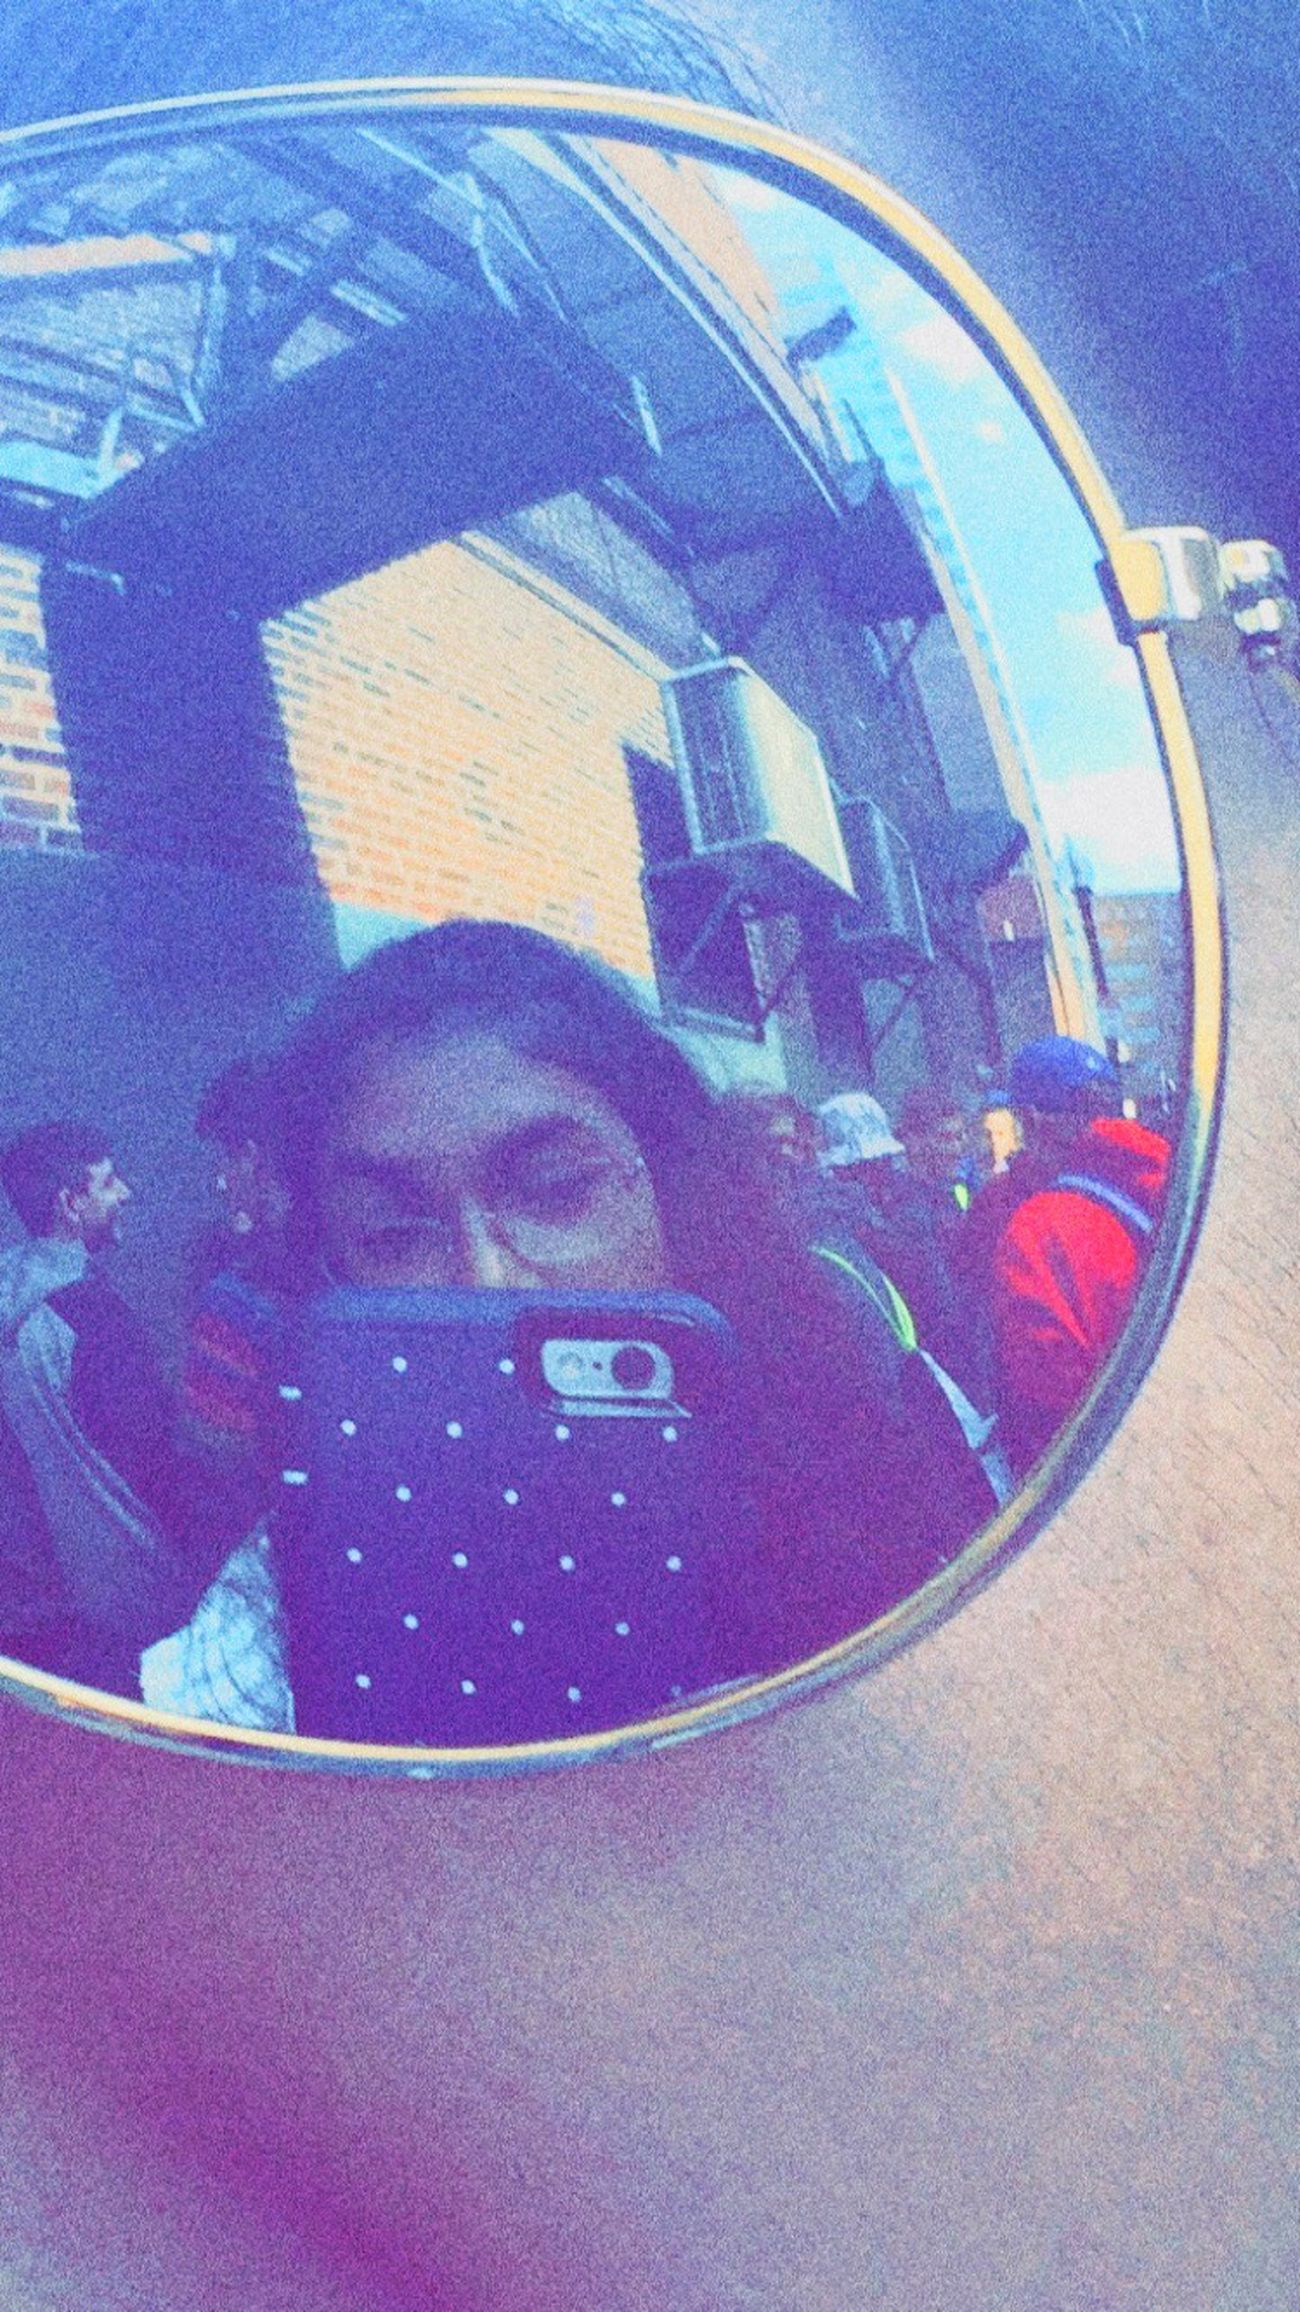 Idk this was taken in someone's sunglasses IDK Aesthetic Newtothis First Eyeem Photo